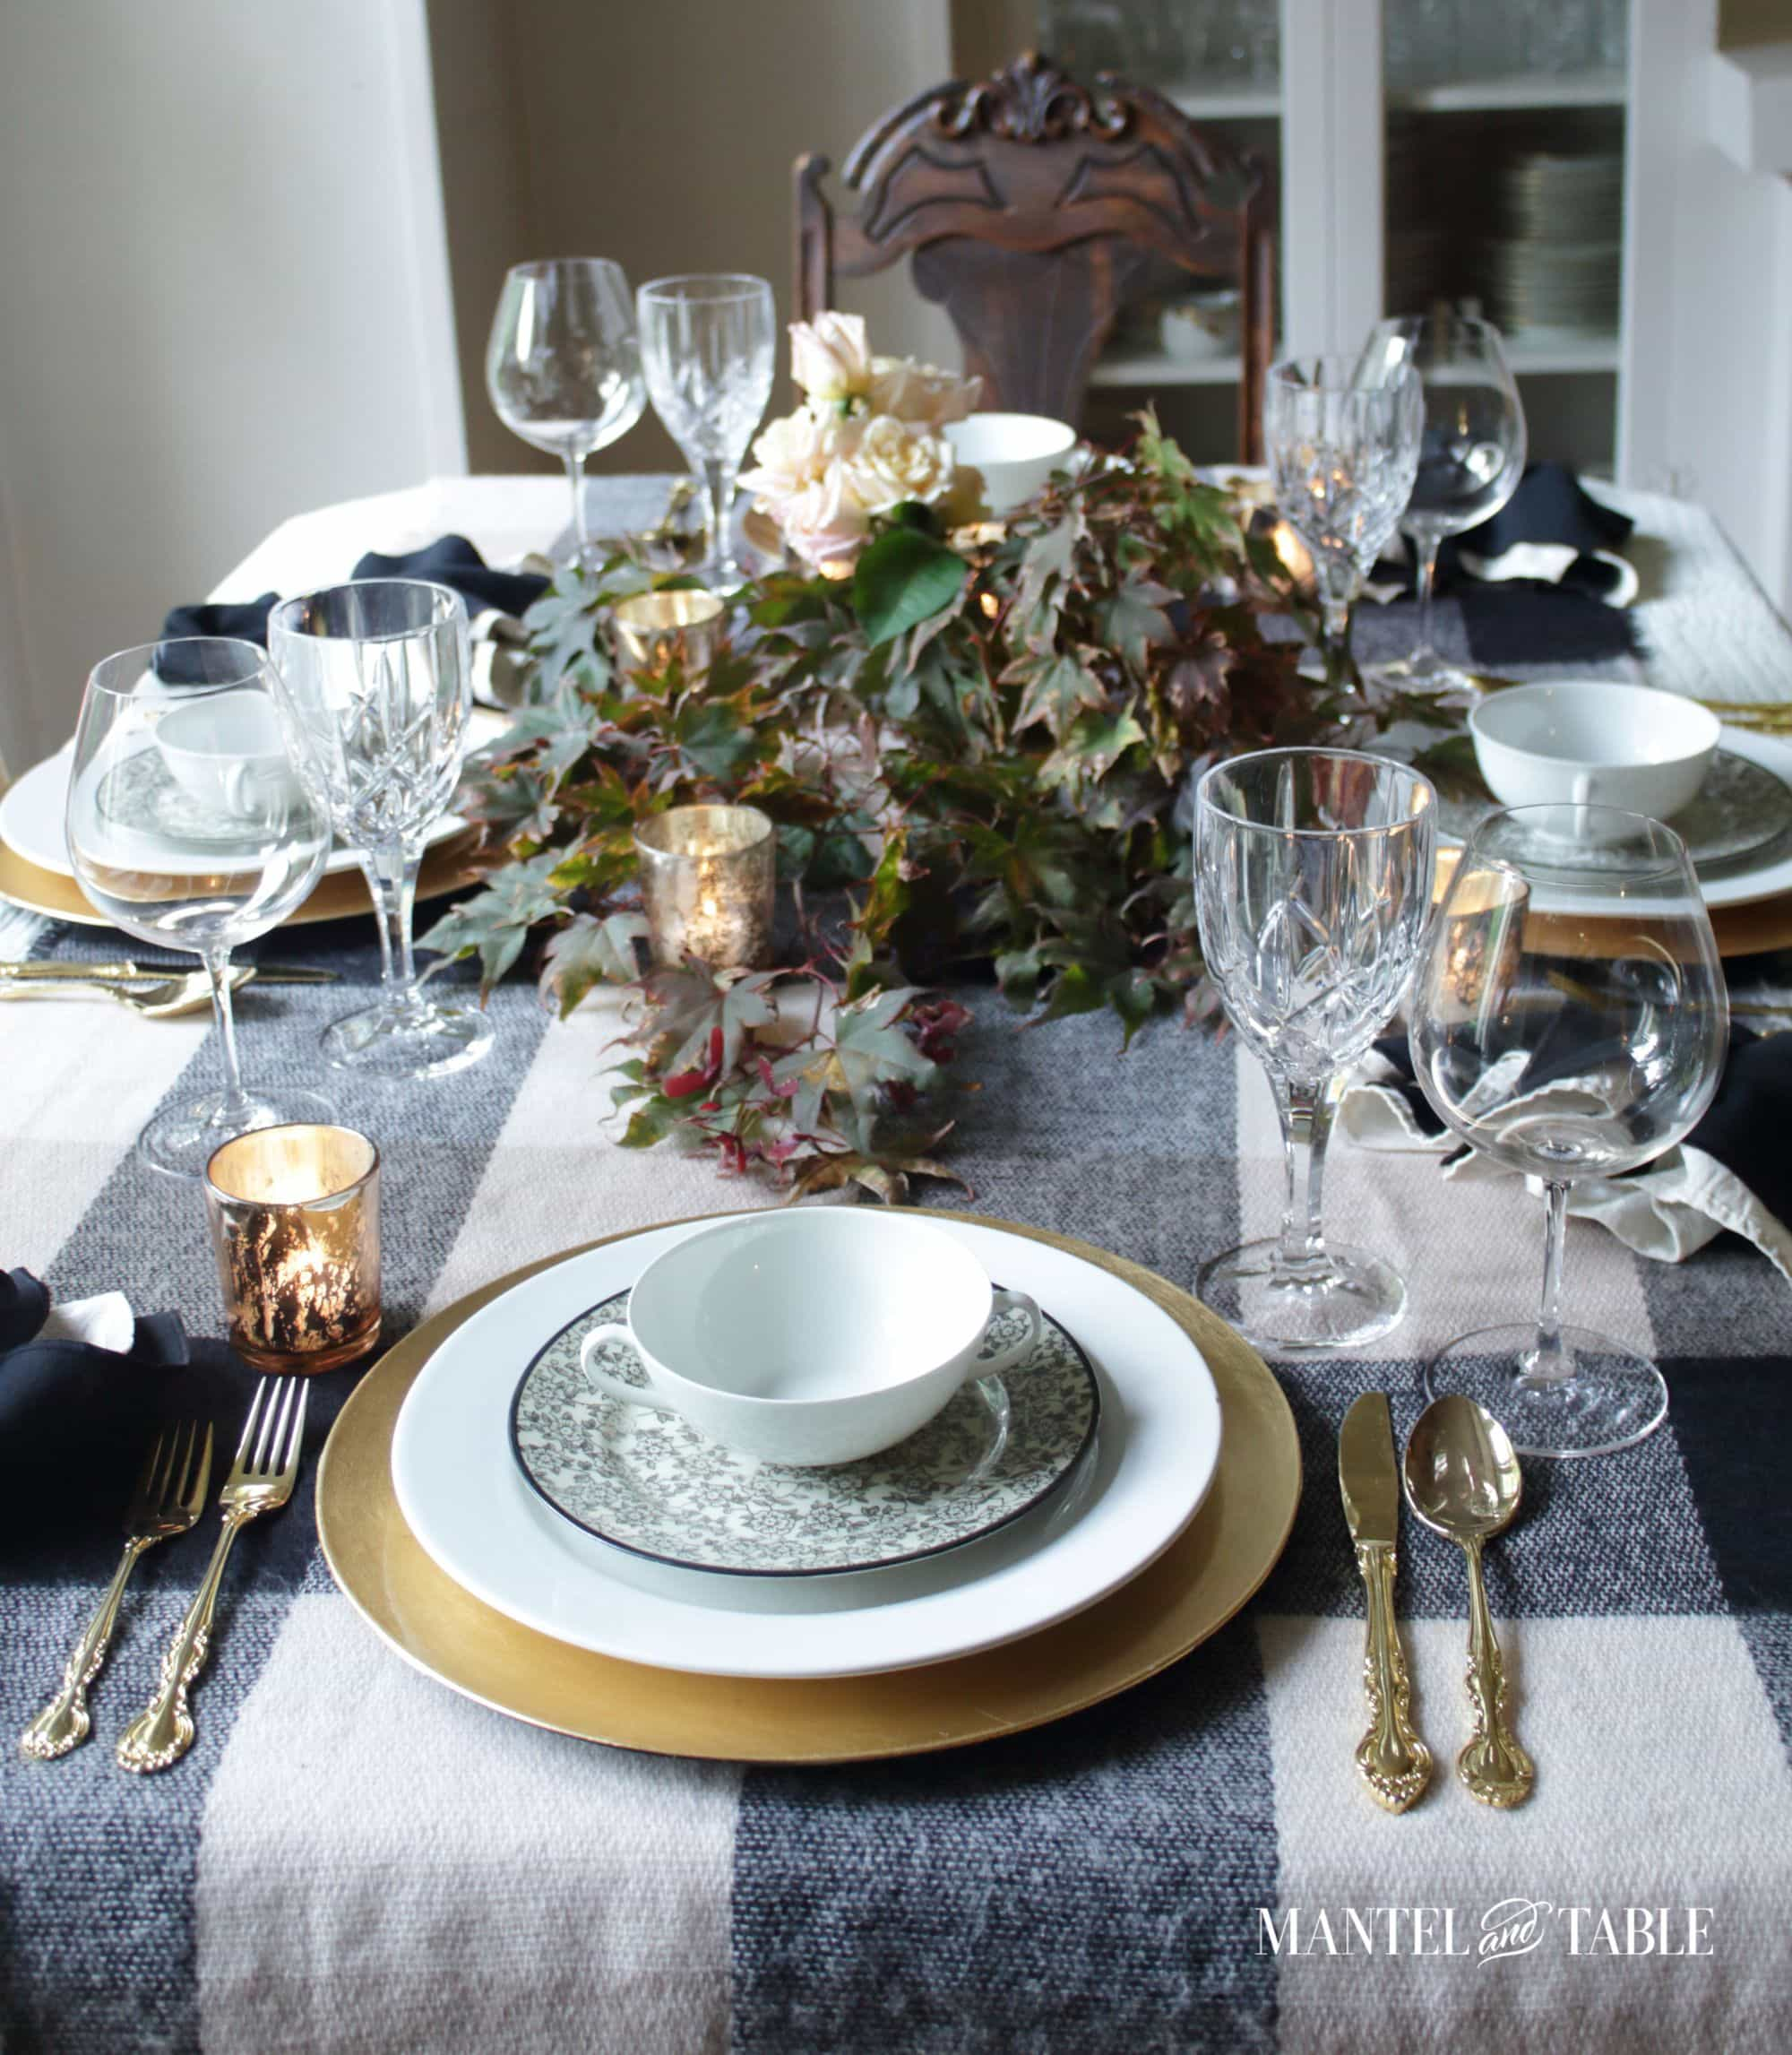 Moody fall table setting with black and white tablecloth, gold flatware and chargers, and floral garland centerpiece